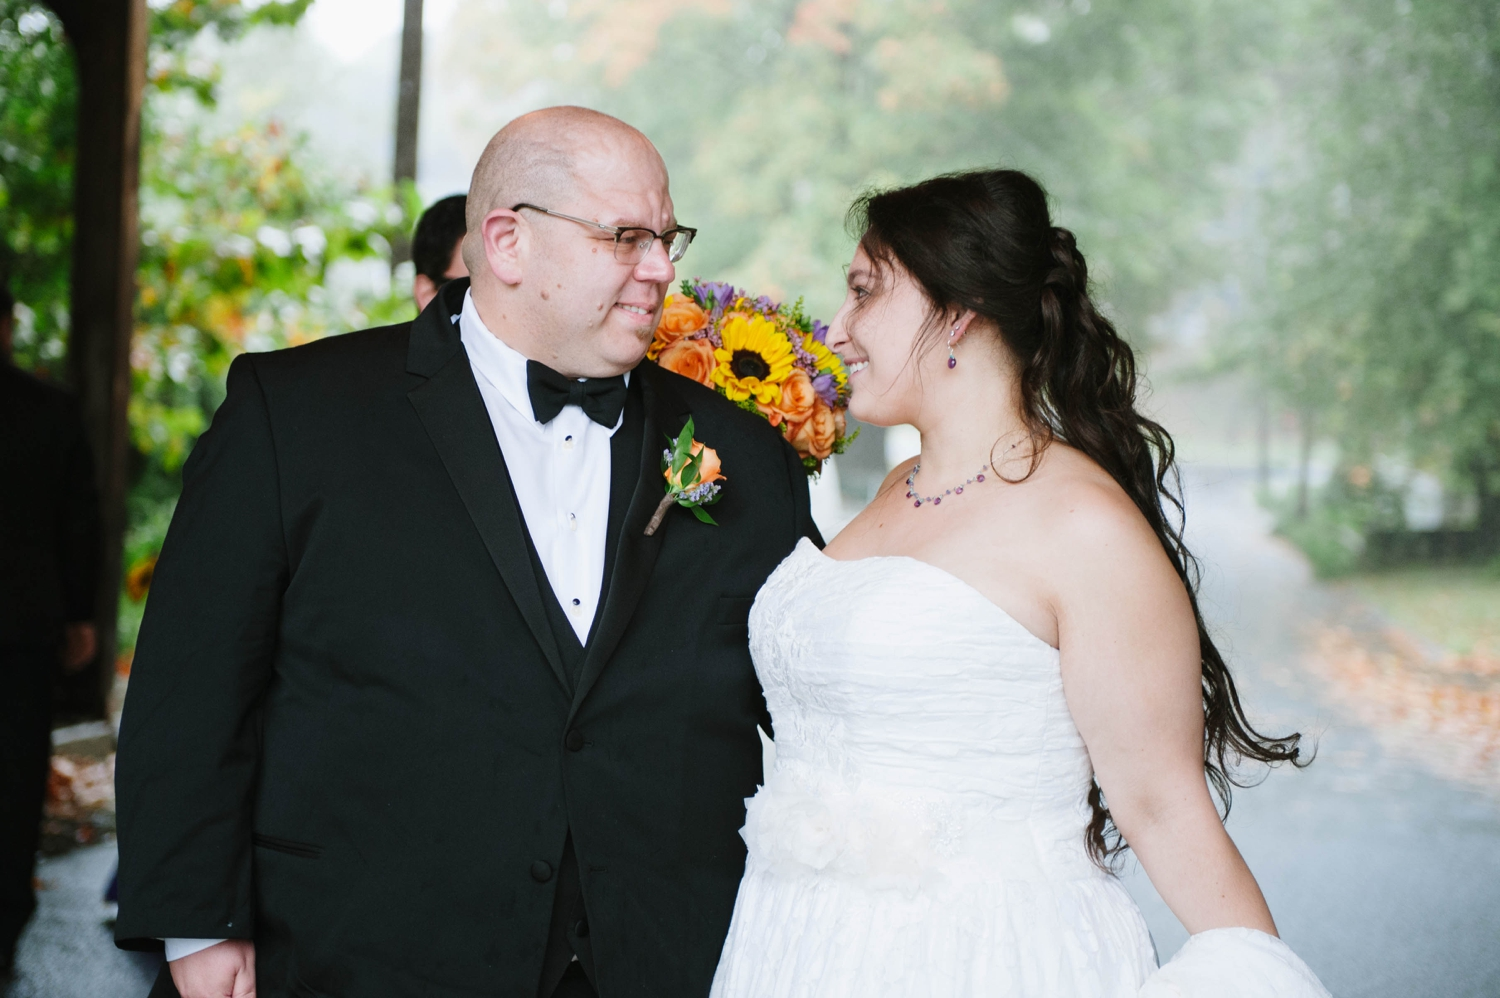 connecticut-wedding-photographer-shaina-lee-photography.jpg